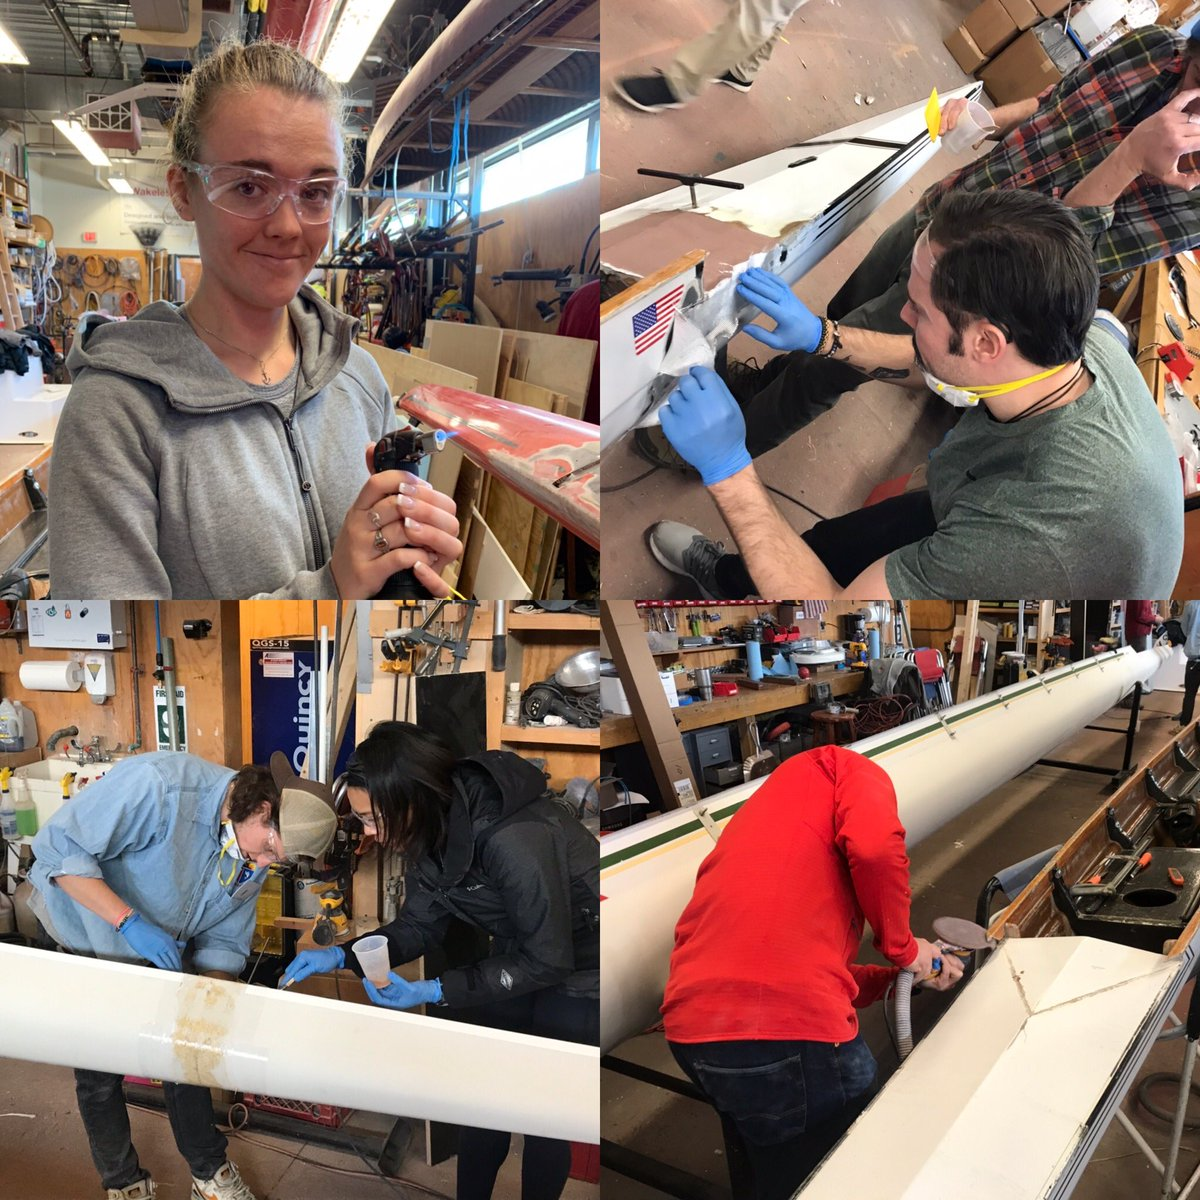 #SpringIsComing! How's your #FleetMaintenance going? Interested in learning how to repair your shells? Checkout the #2020Fellows as they #Torch, #Layup, and #Sand in CM540 Rigging and Fleet Maintenance class. Join them: http://bit.ly/irlatcri pic.twitter.com/ZUfGO514cr – at Community Rowing